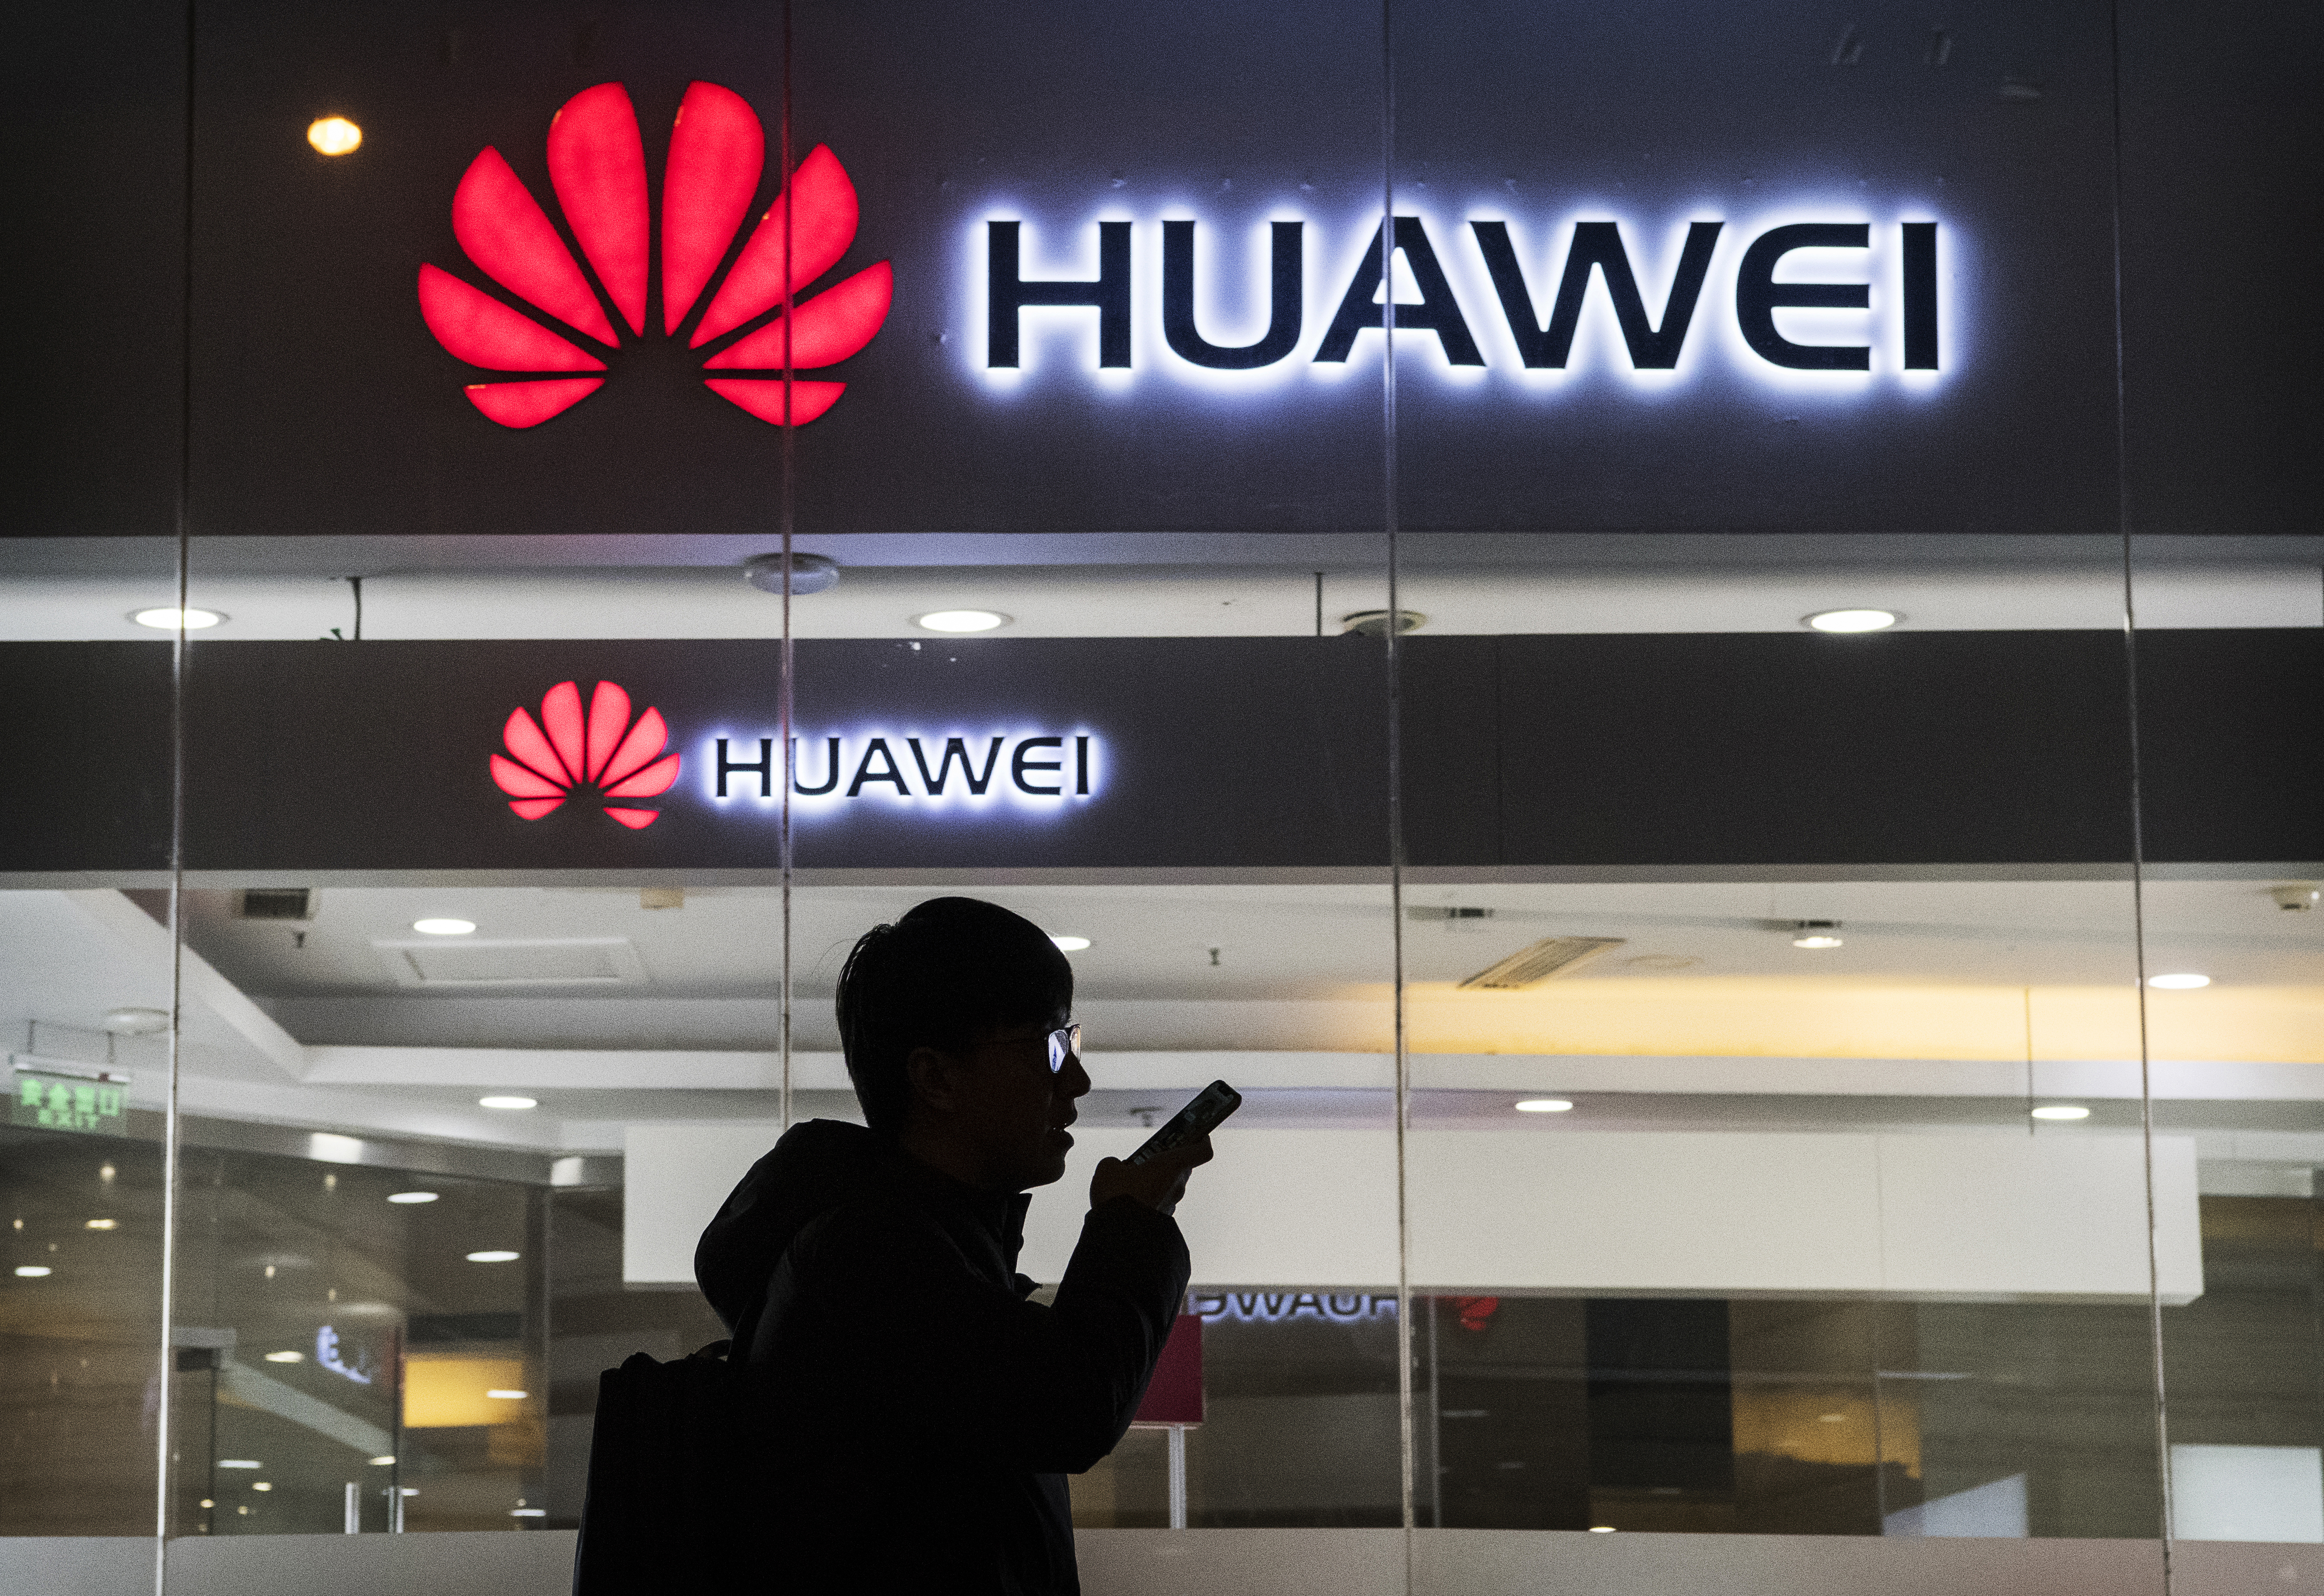 A man silhouetted against a glass storefront with a sign reading Huawei above it.